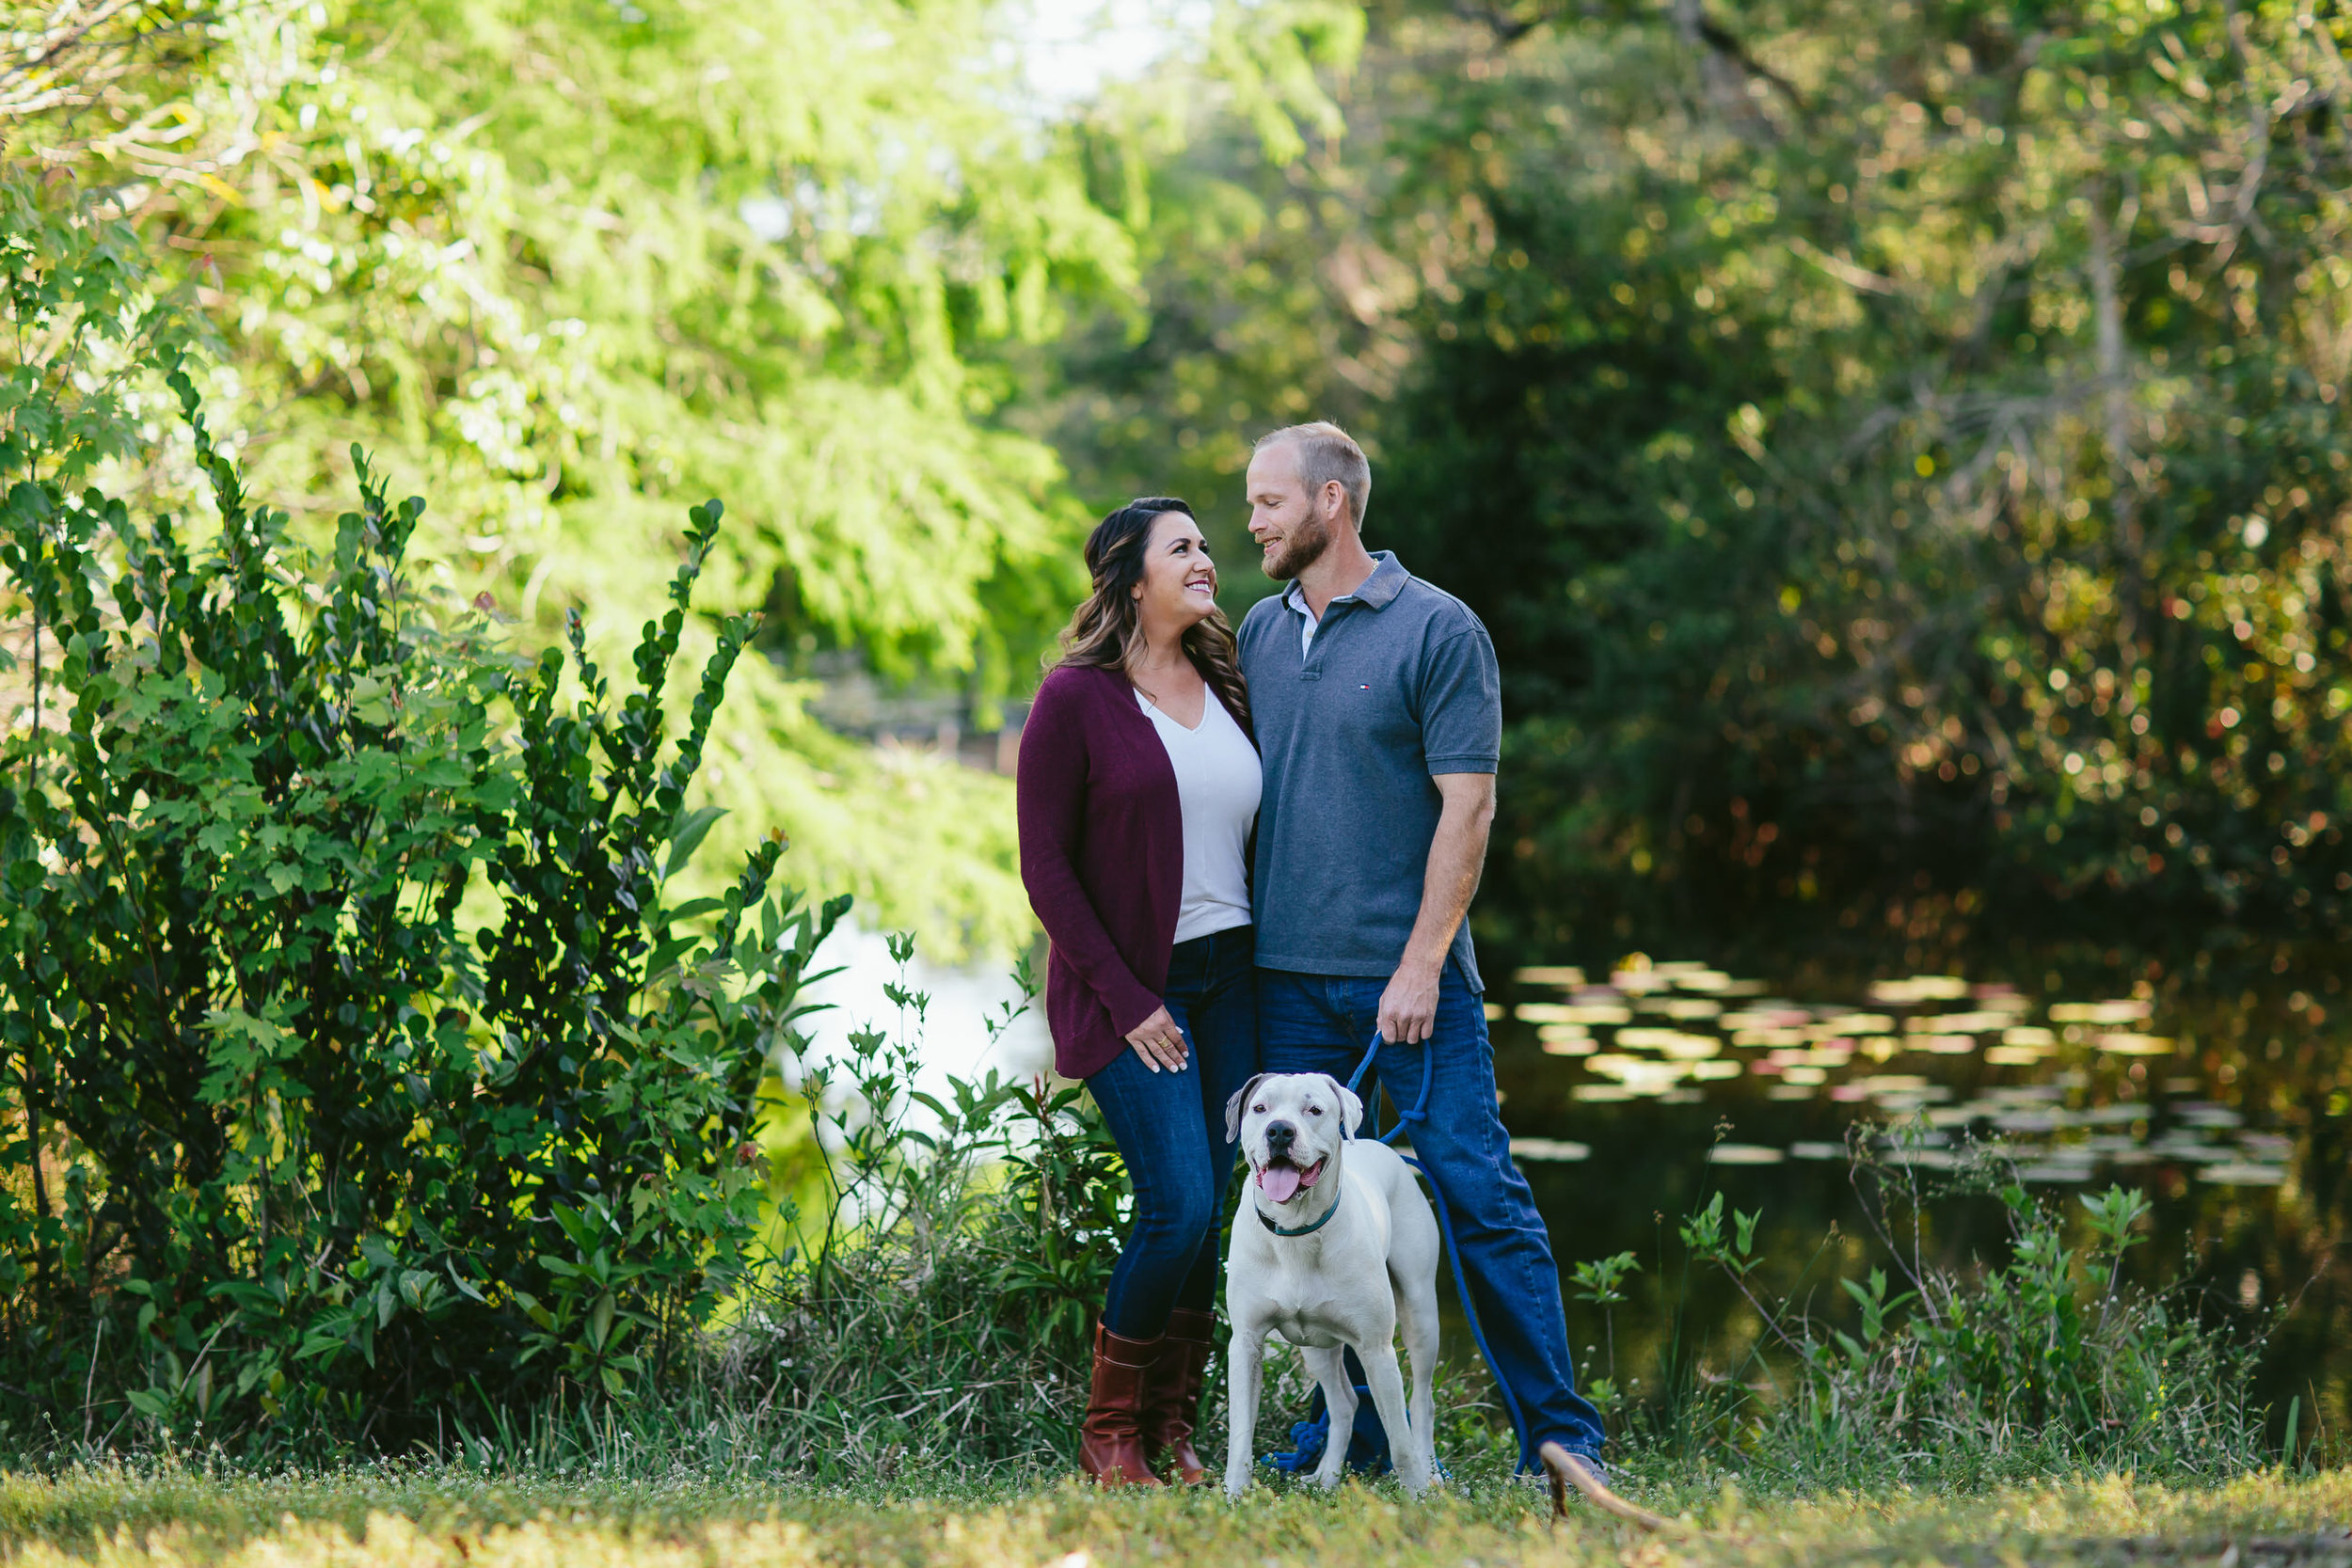 engagement-photos-with-pets-dogs-love-tiny-house-photo.jpg